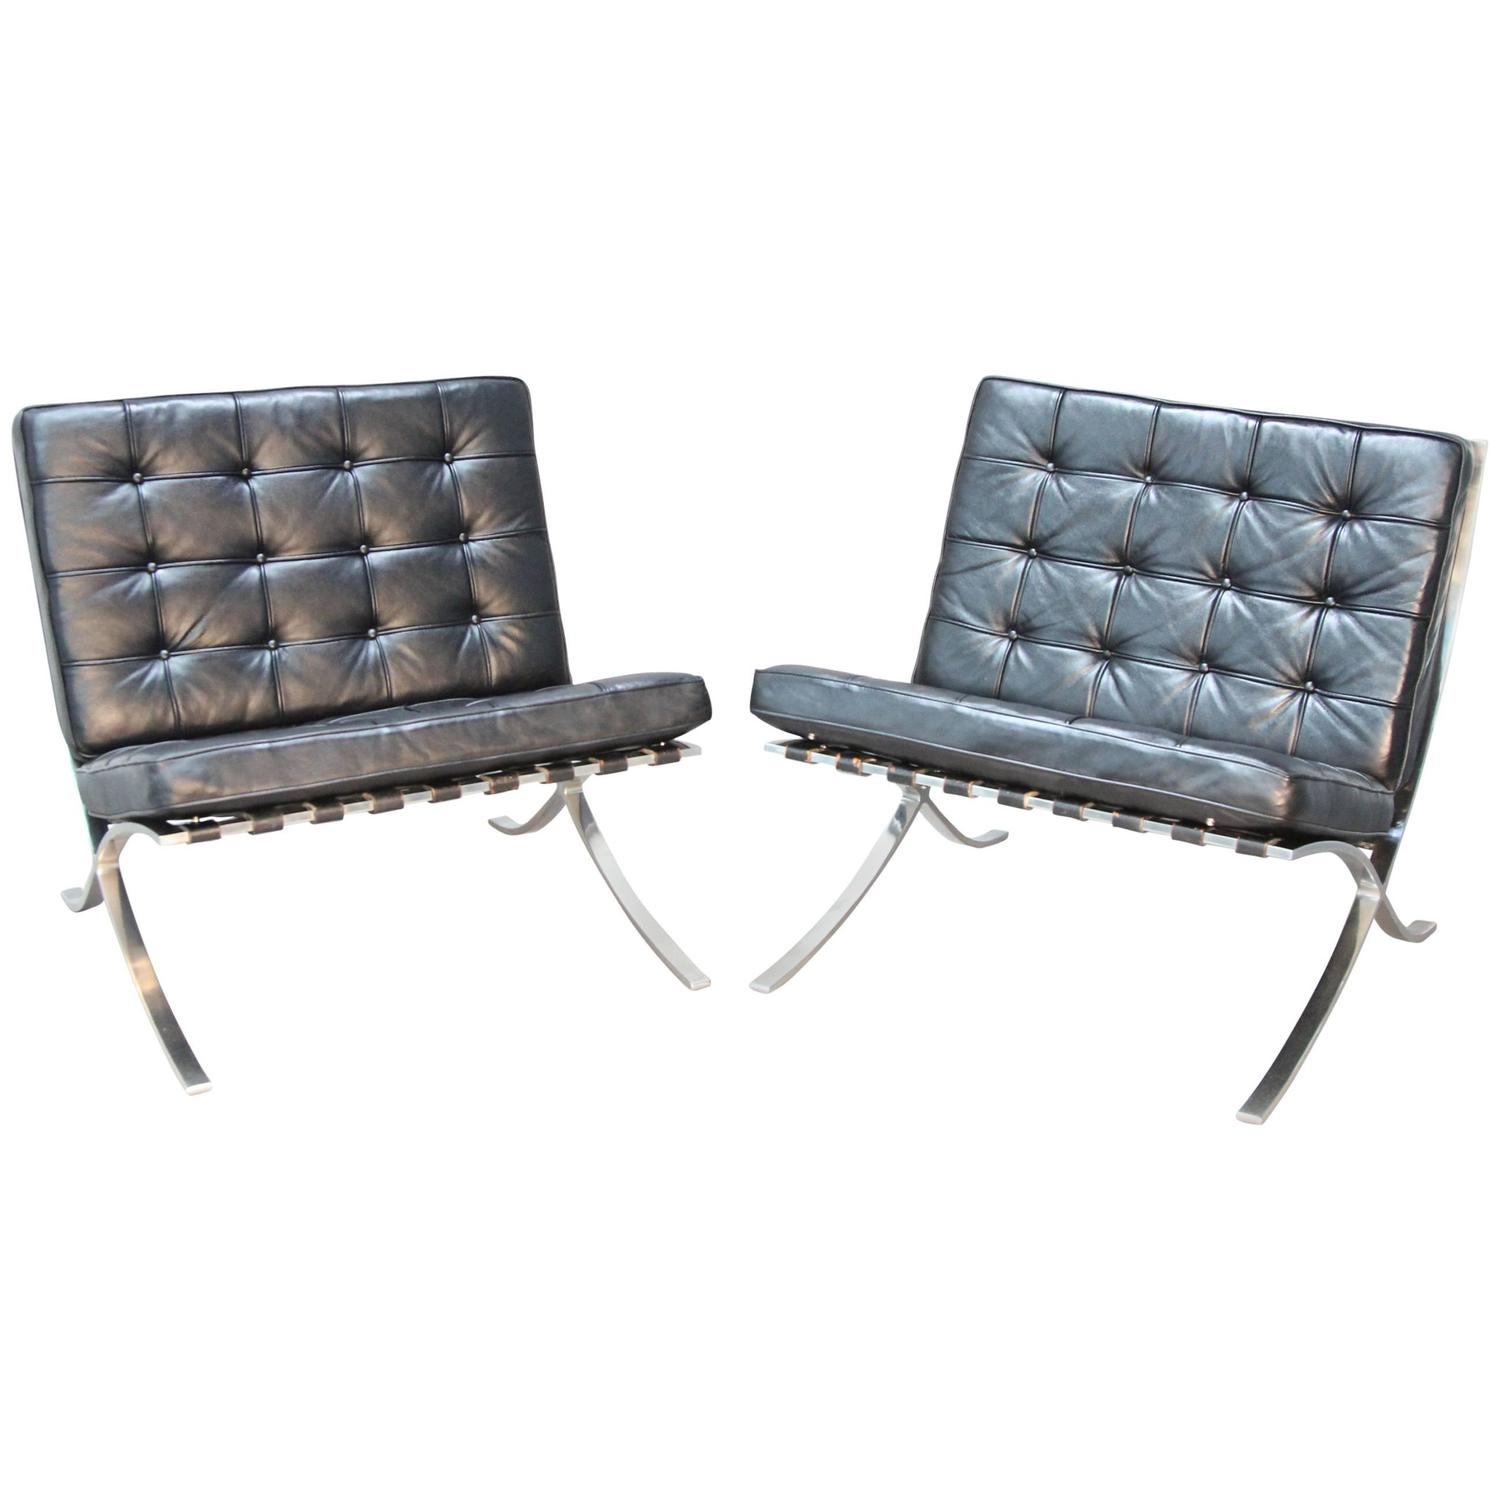 barcelona chairs for sale weird vintage by mies van der rohe at